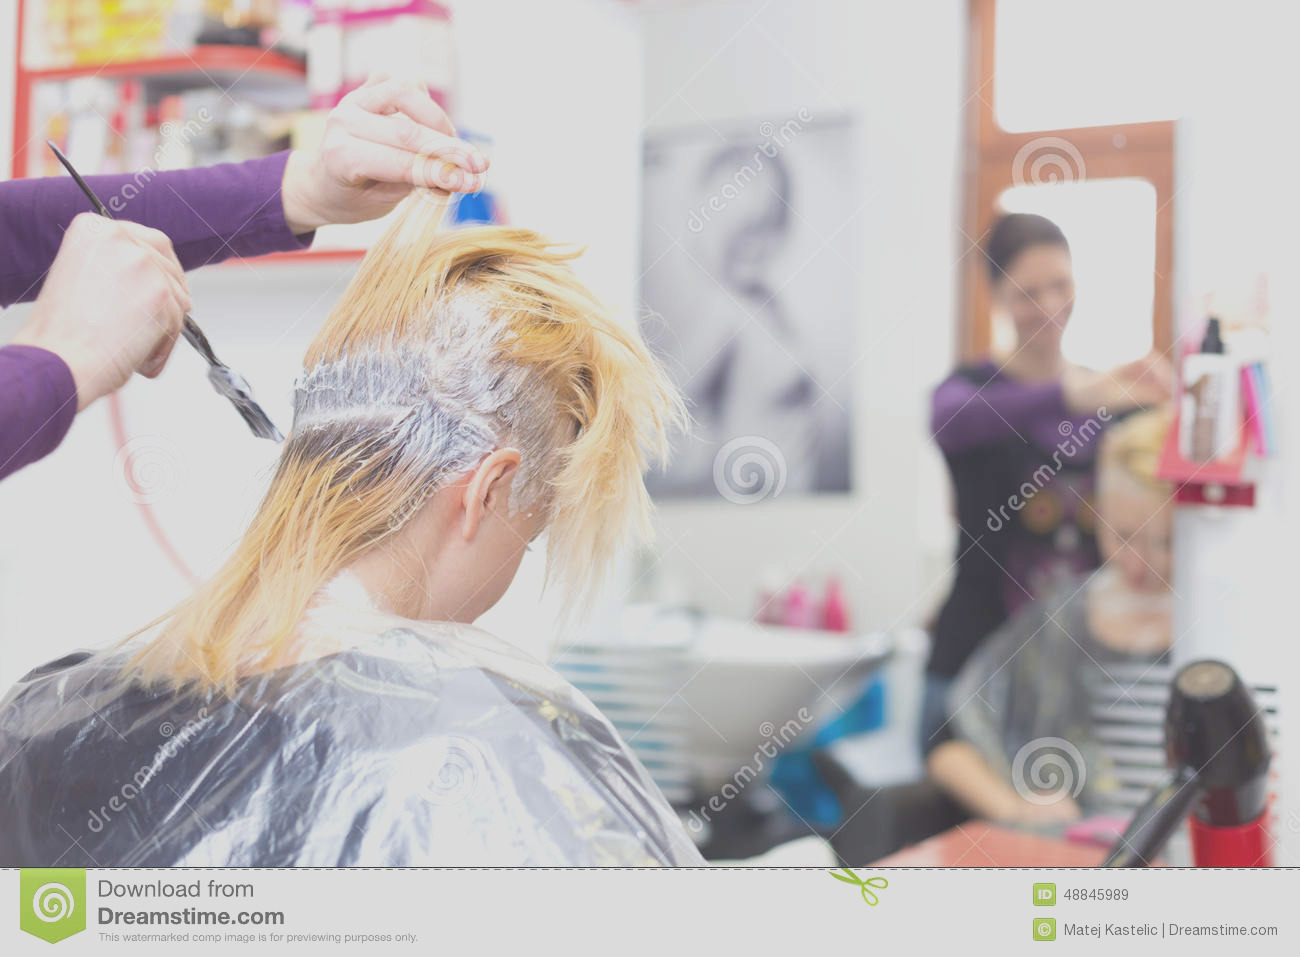 stock photo hairdresser salon woman hair dye colouring process beautiful young women dyeing hairs image